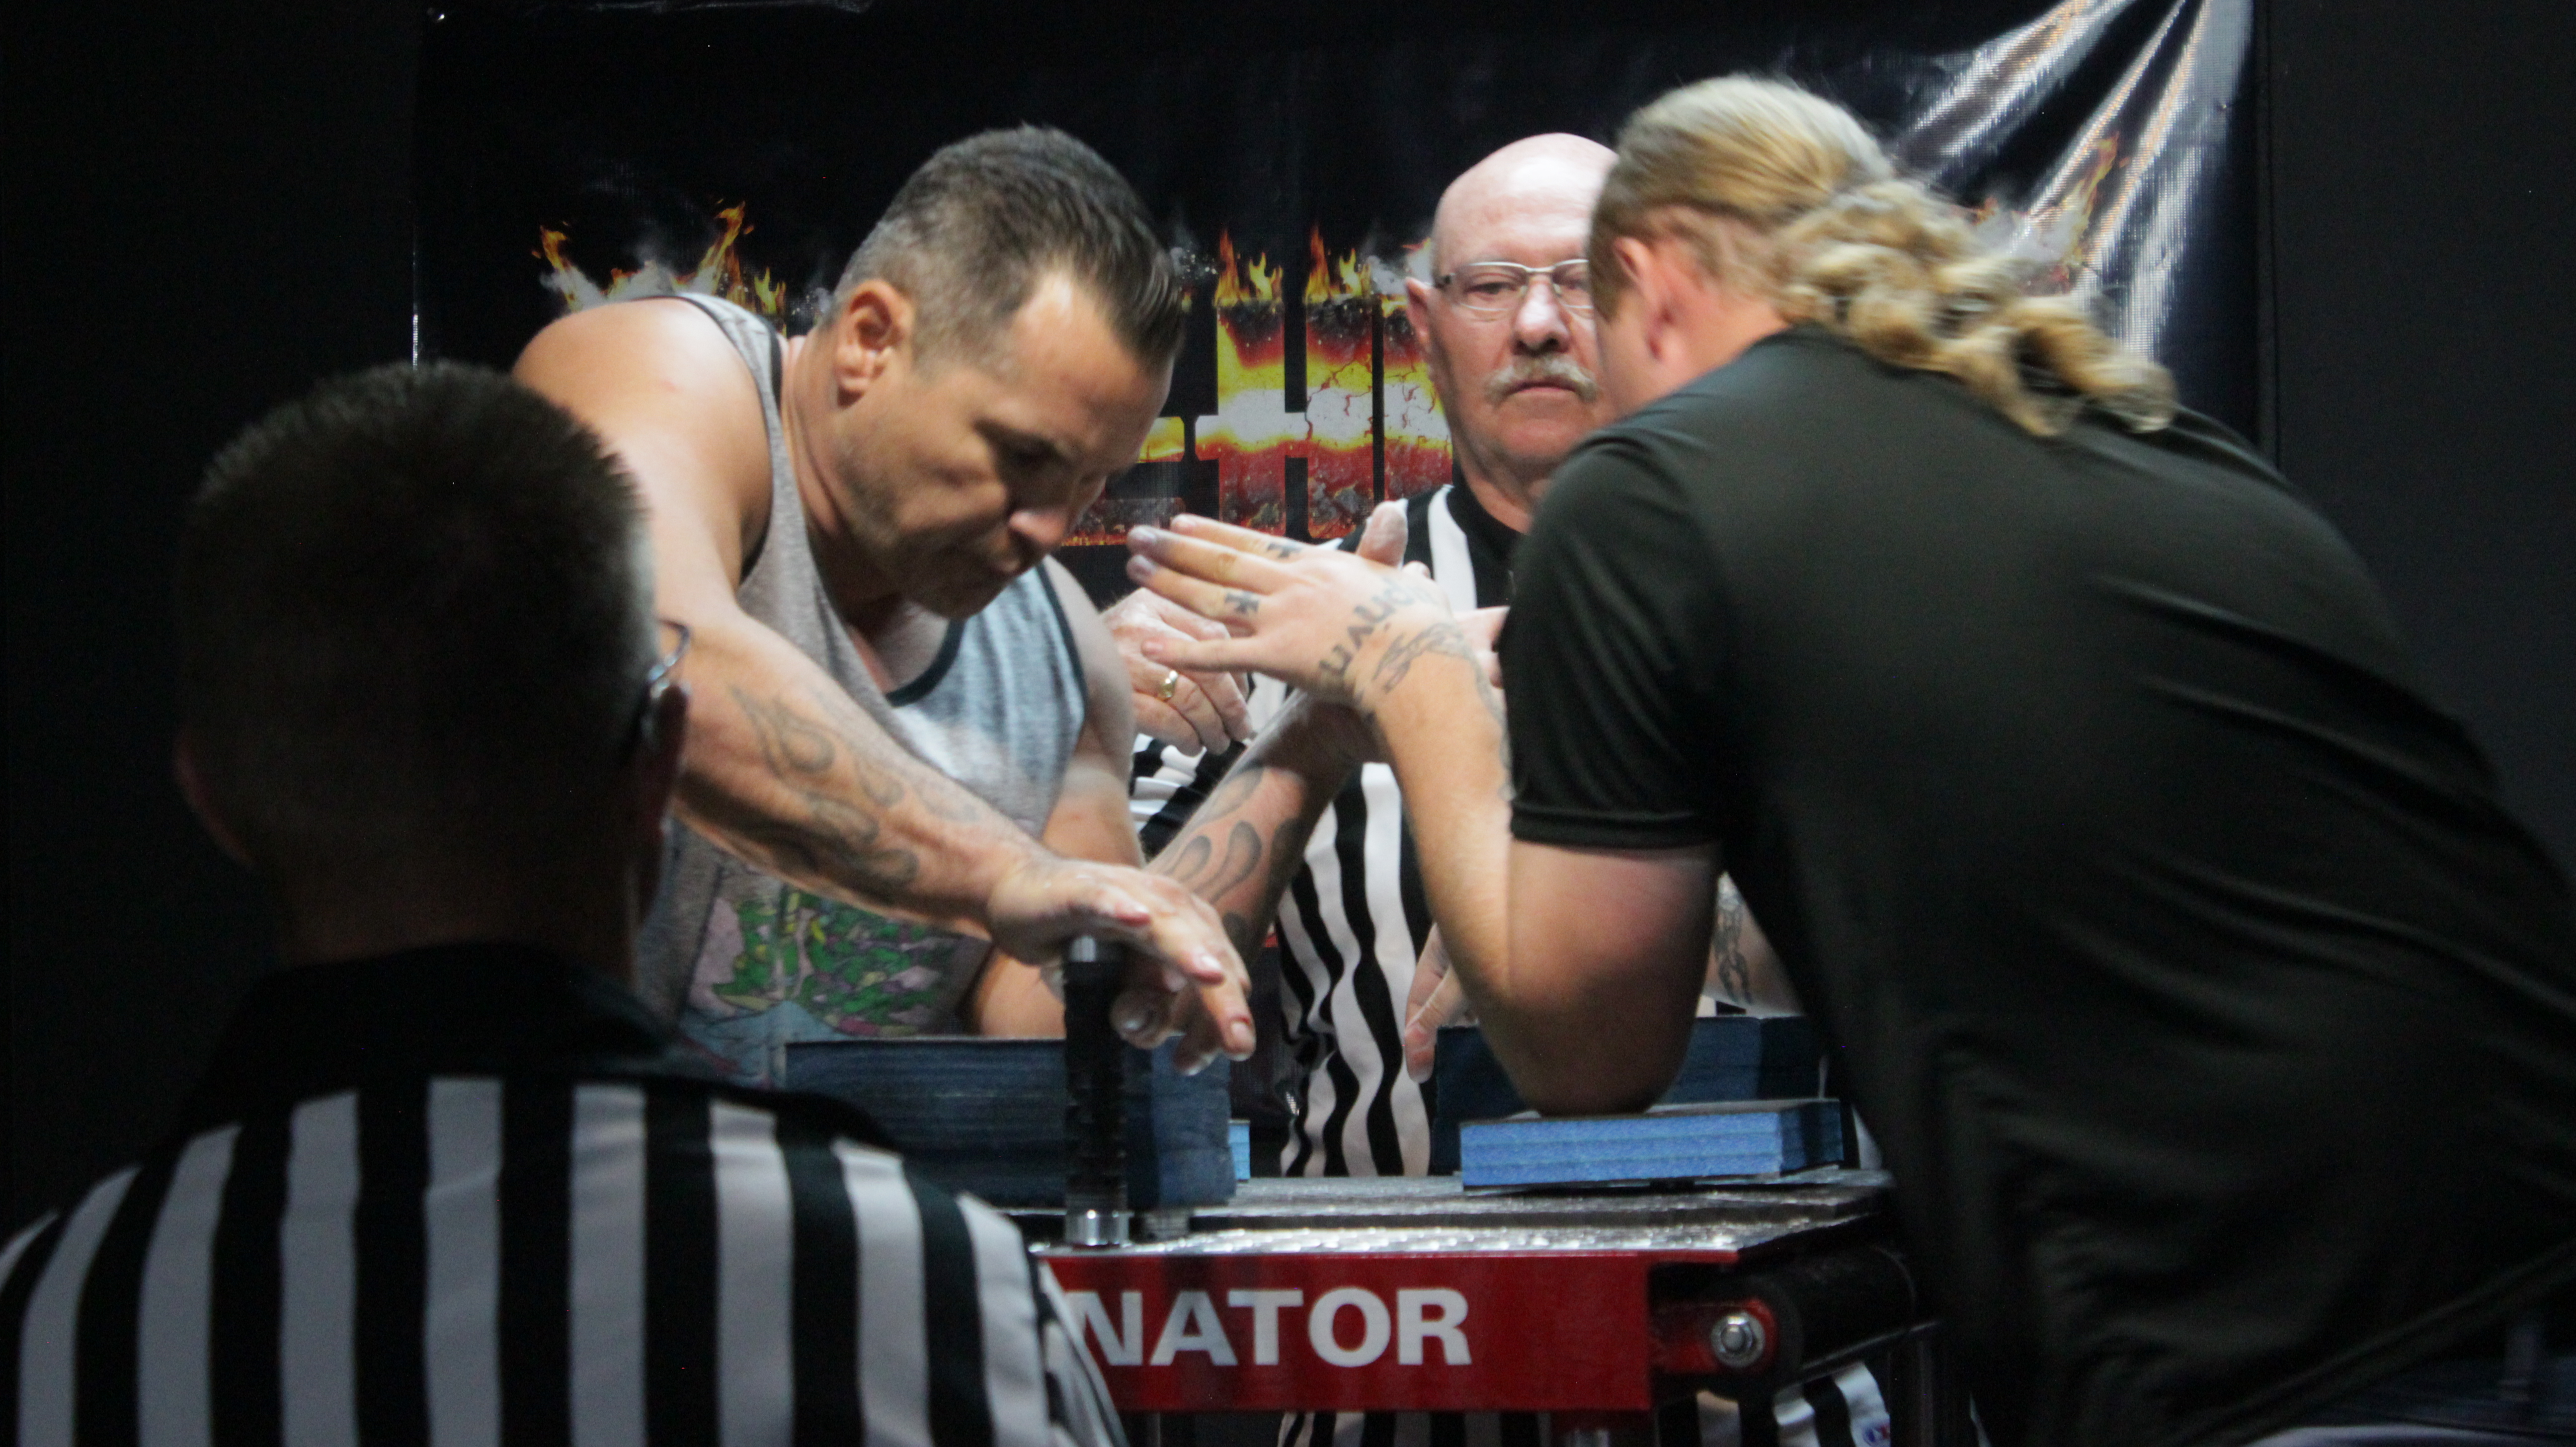 Southern Utah Arm Wrestling held a tournament at Firehouse Bar and Grill Saturday afternoon. The top three competitors from each division advanced to the national tournament to be held in Las Vegas Dec. 10. St. George, Utah, Aug 27, 2016 | Photo by Don Gilman, St. George News